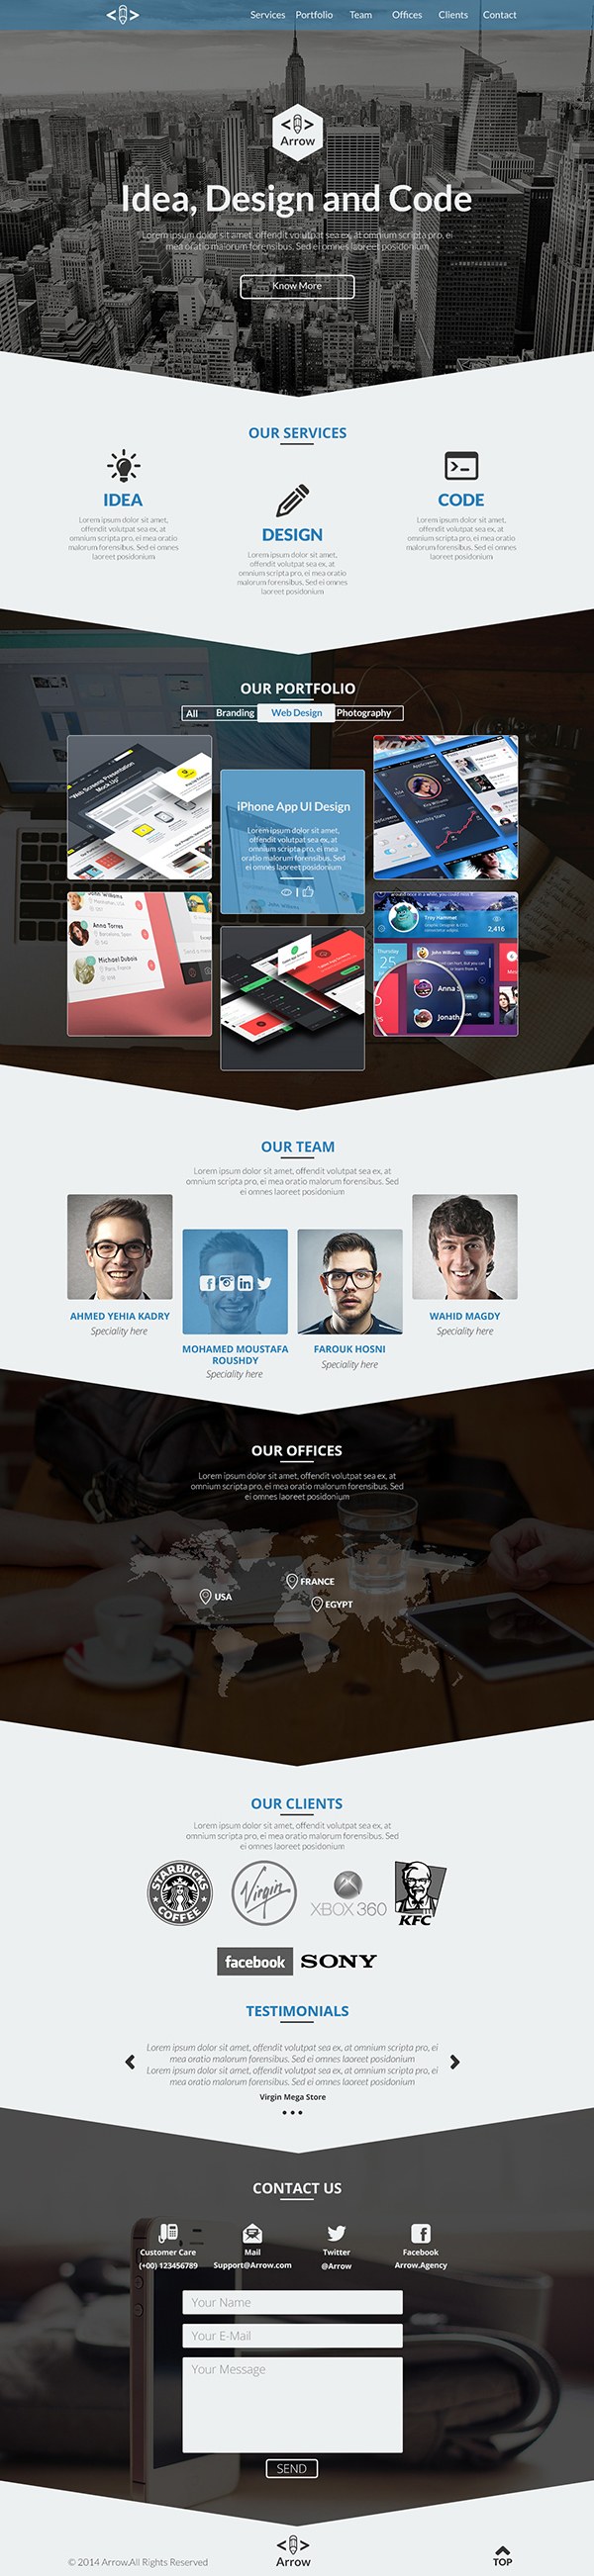 Psd Templates 20 One Page Free Web Templates Freebies